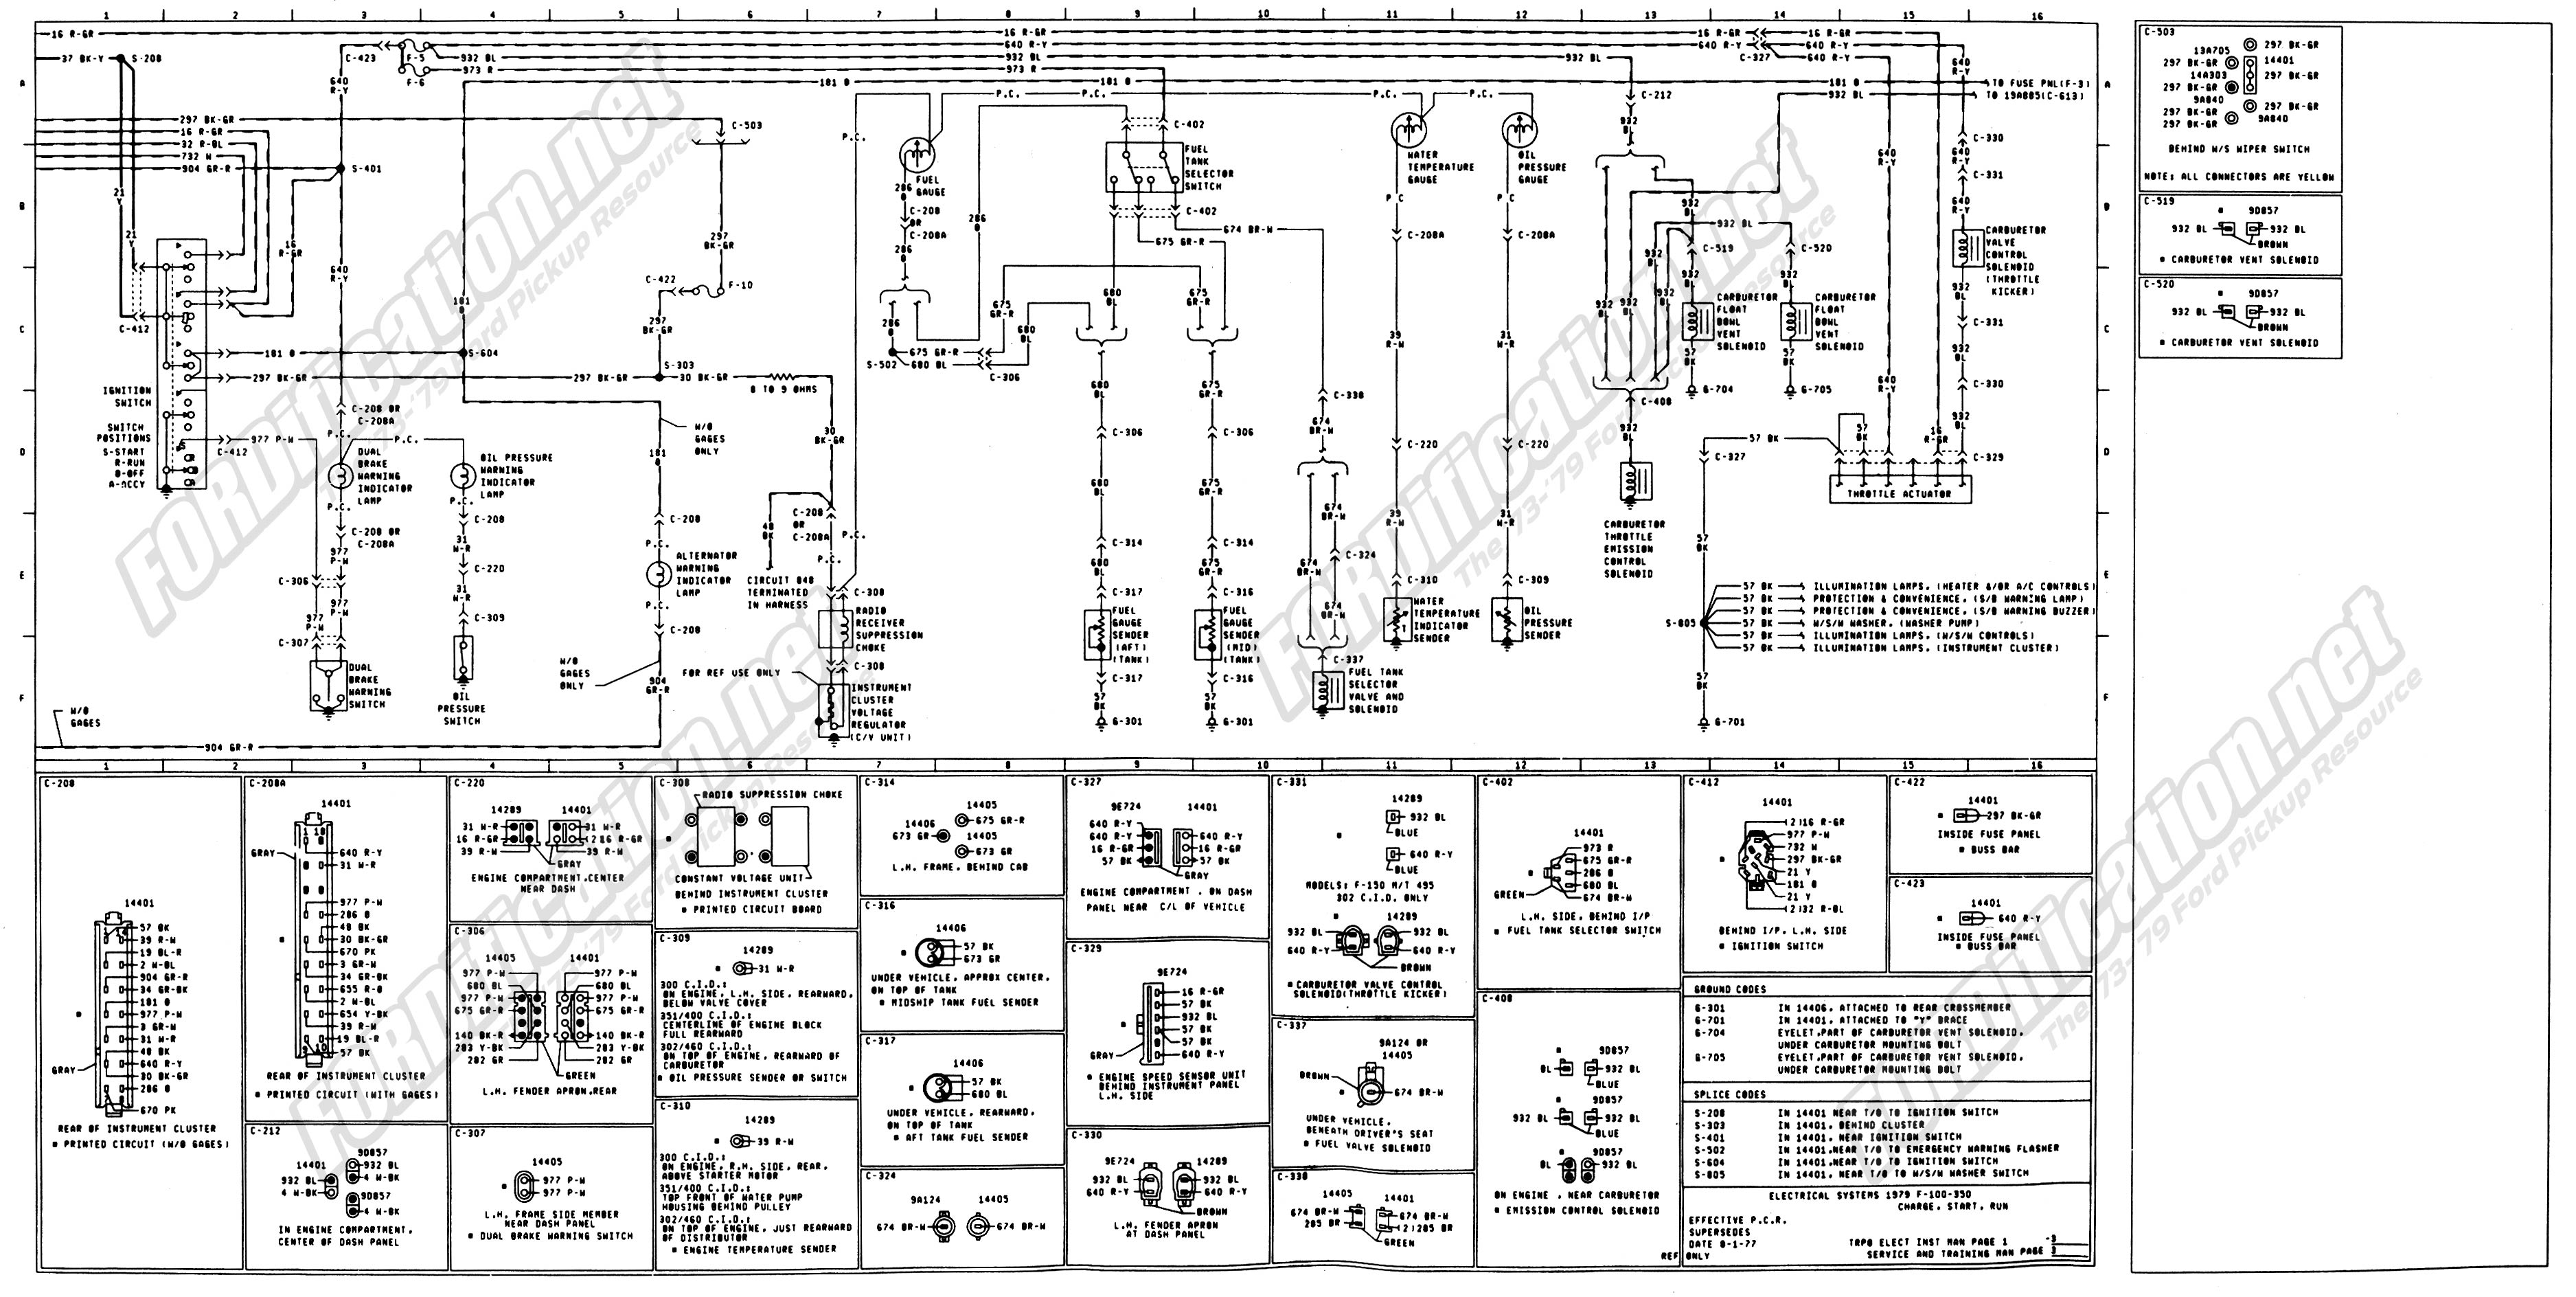 wiring_79master_3of9 1973 1979 ford truck wiring diagrams & schematics fordification net 6.0 powerstroke injector wiring diagram at n-0.co